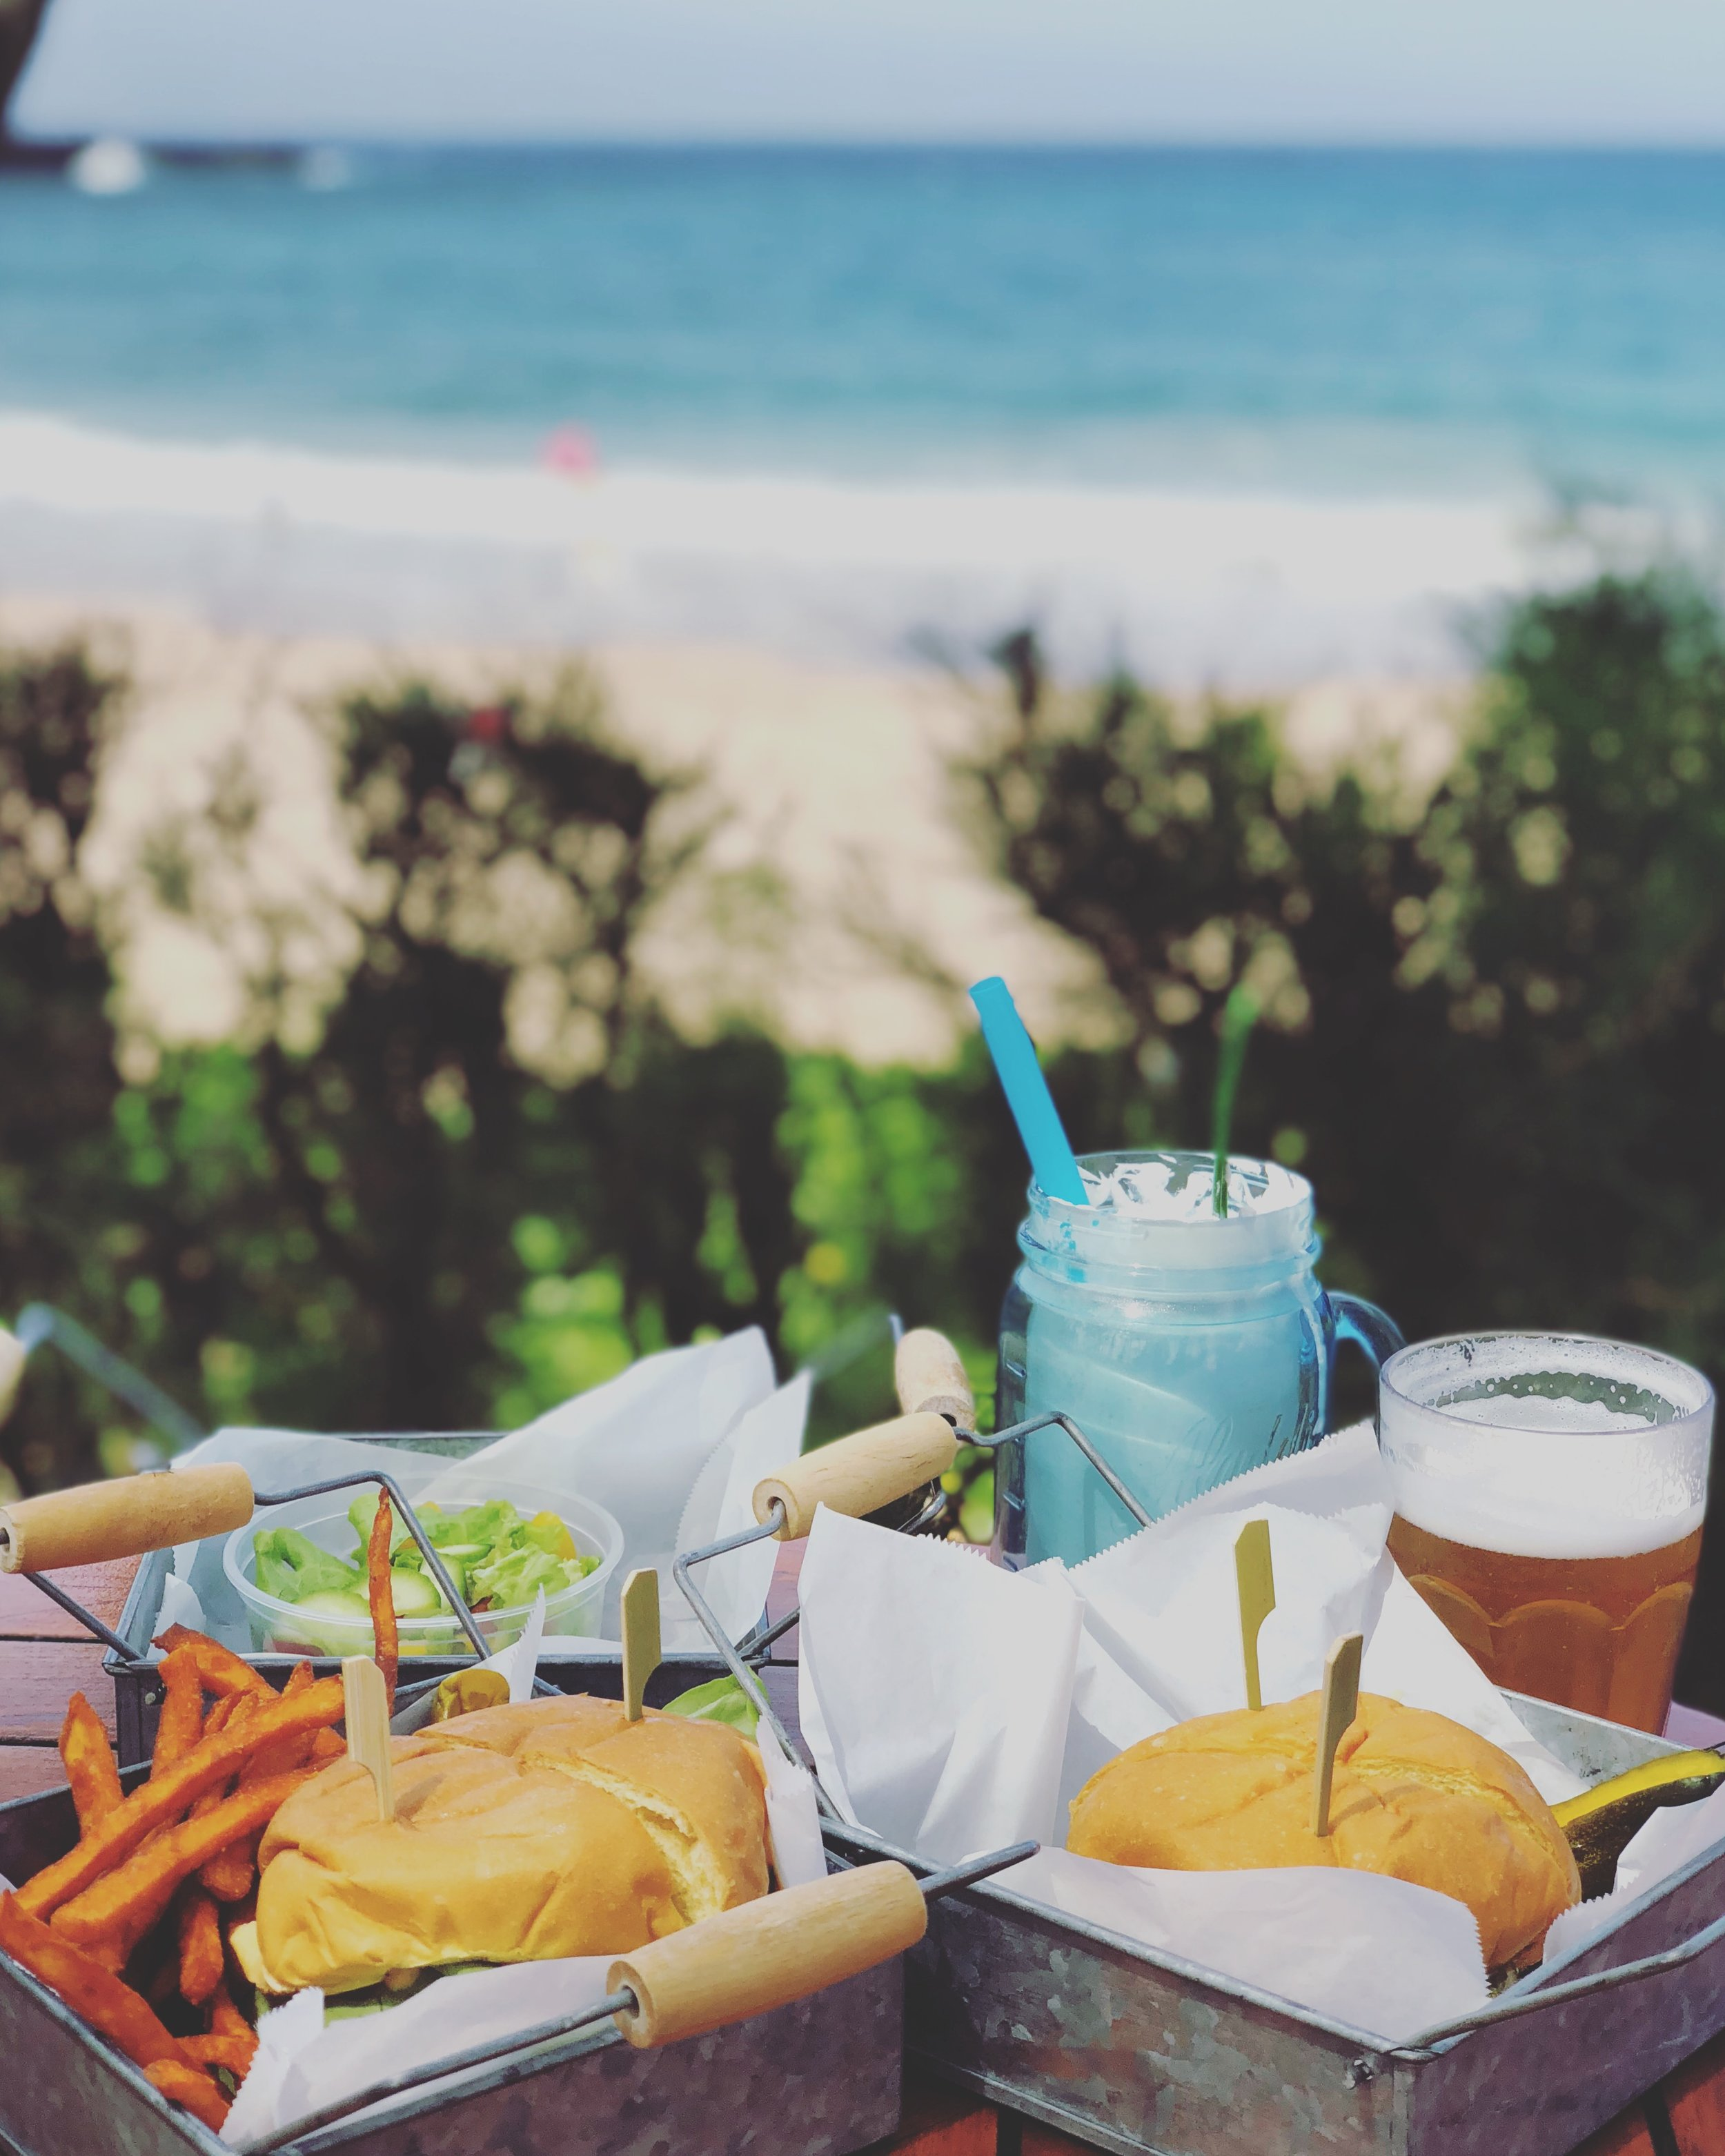 Burgers and shakes with a view at the Ritz Carlton's Burger Shack